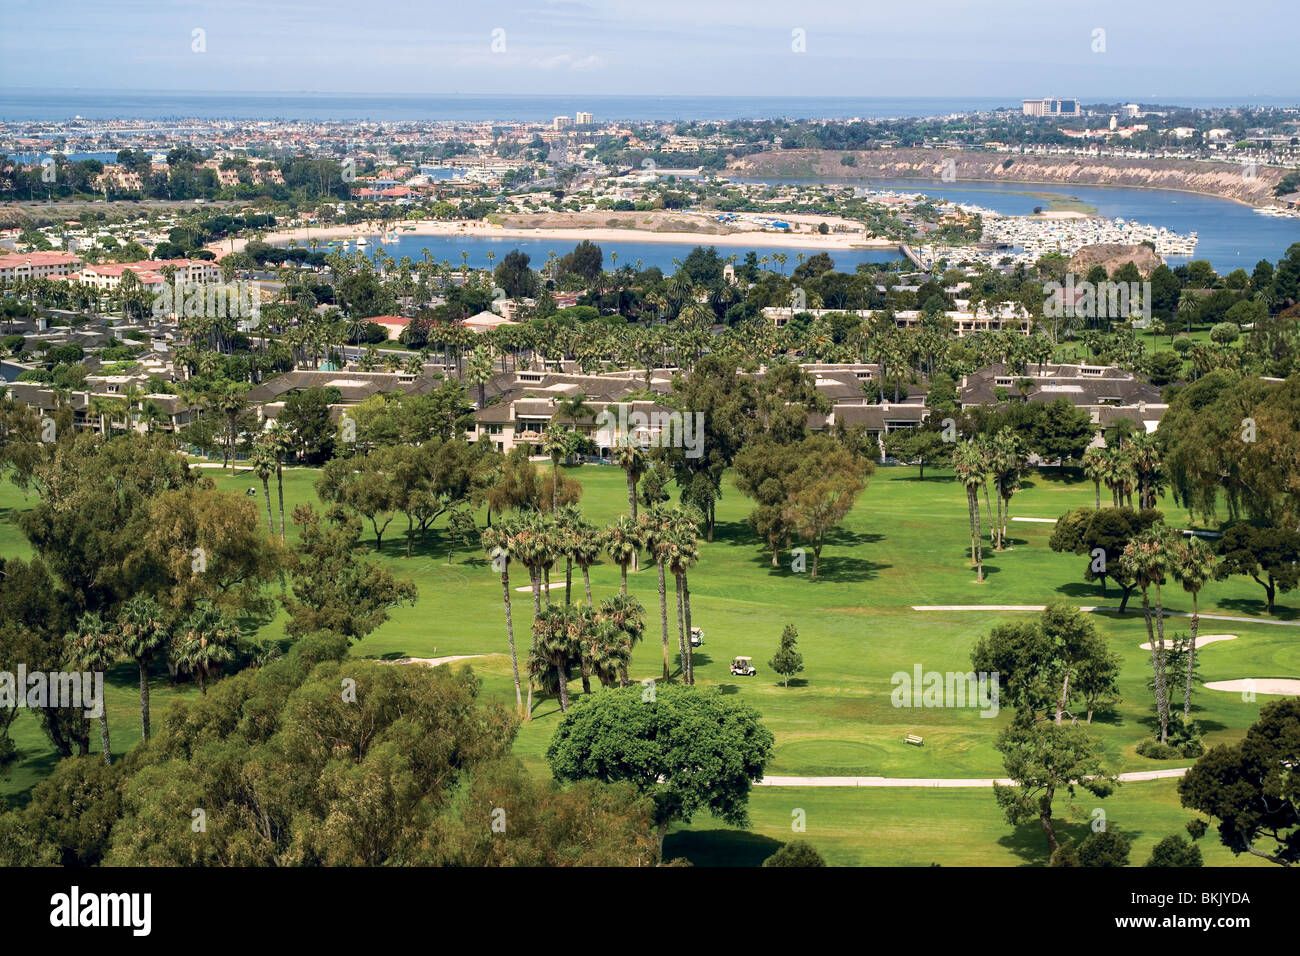 This scenic vista shows the Newport Beach Country Club golf links, the Back Bay and Pacific Ocean coastline in Newport - Stock Image